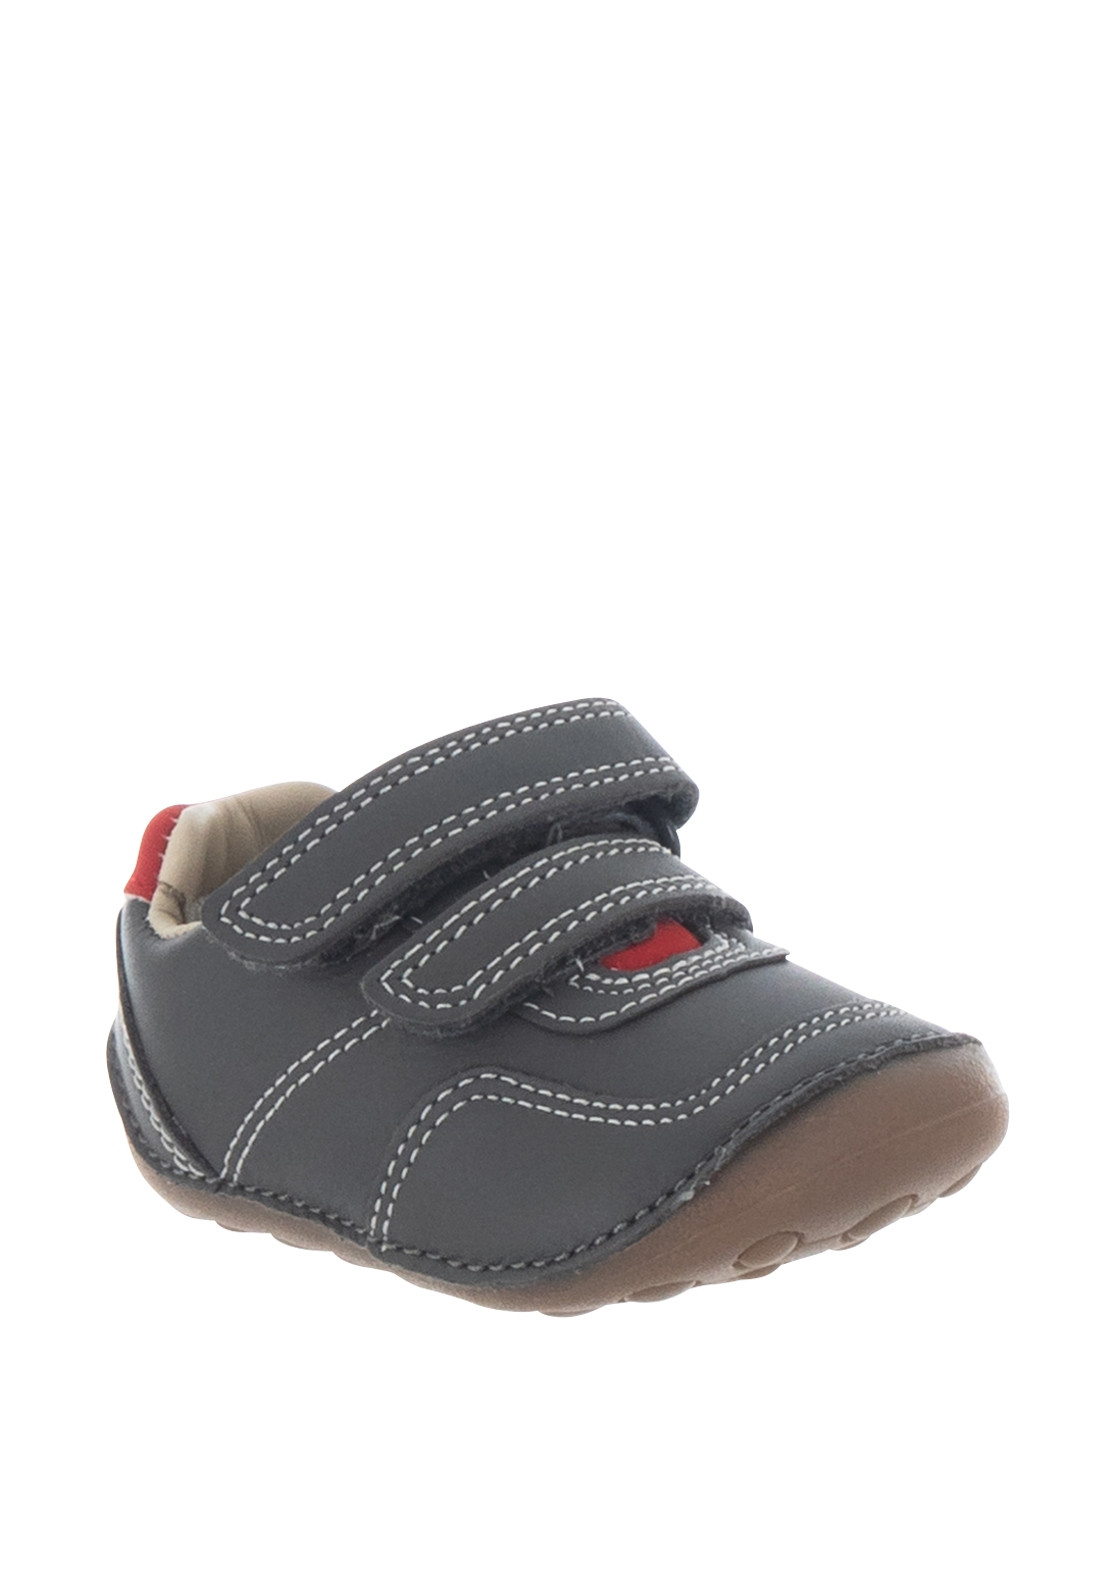 e2020aa2 Clarks Baby Boys Tiny Dusk Pre Walker Shoes, Grey